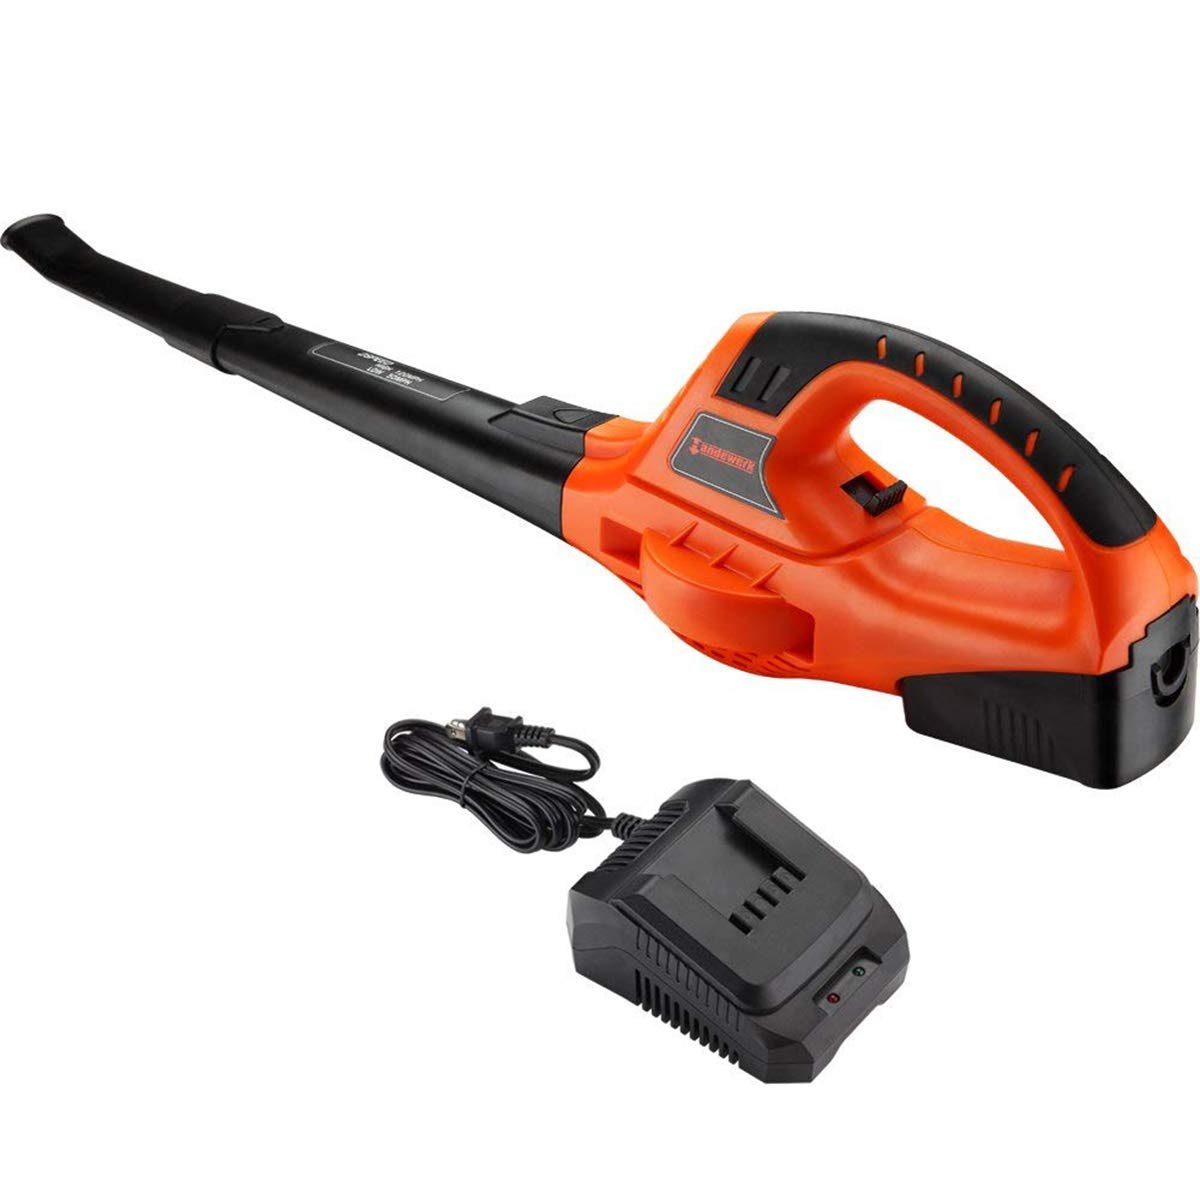 Garden Bean 130 MPH High Performance Variable Speed Cordless Handheld Leaf Blower with Battery & Charger